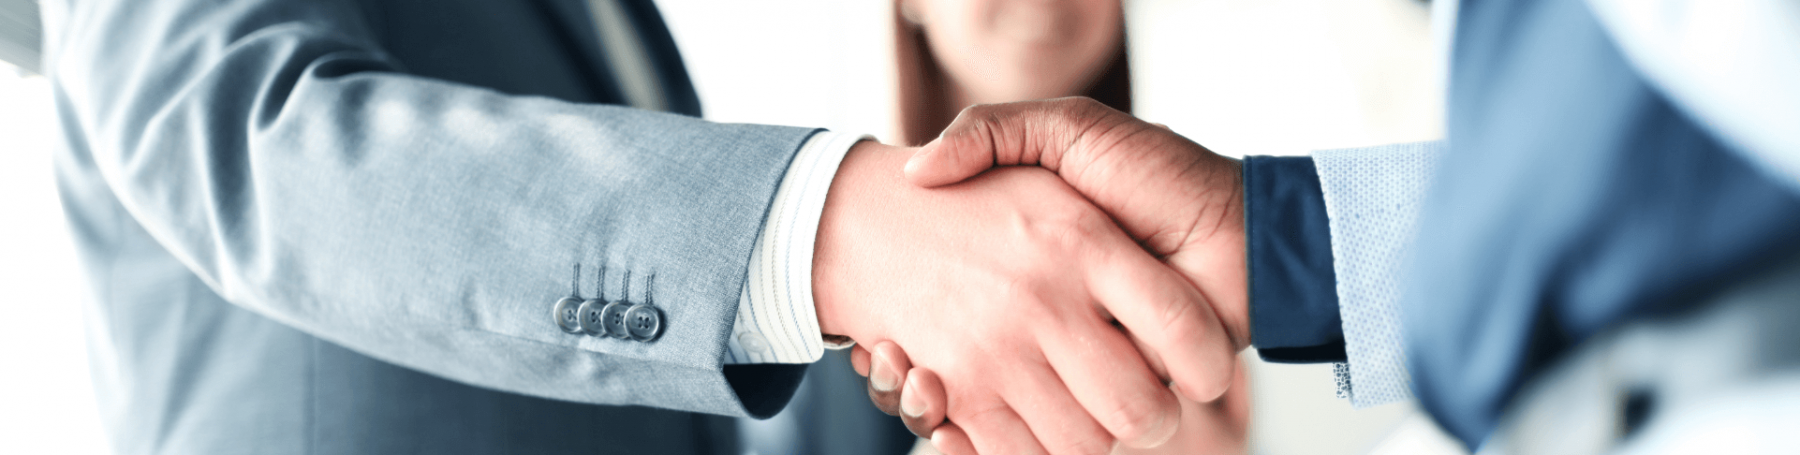 Two business colleagues shaking hands